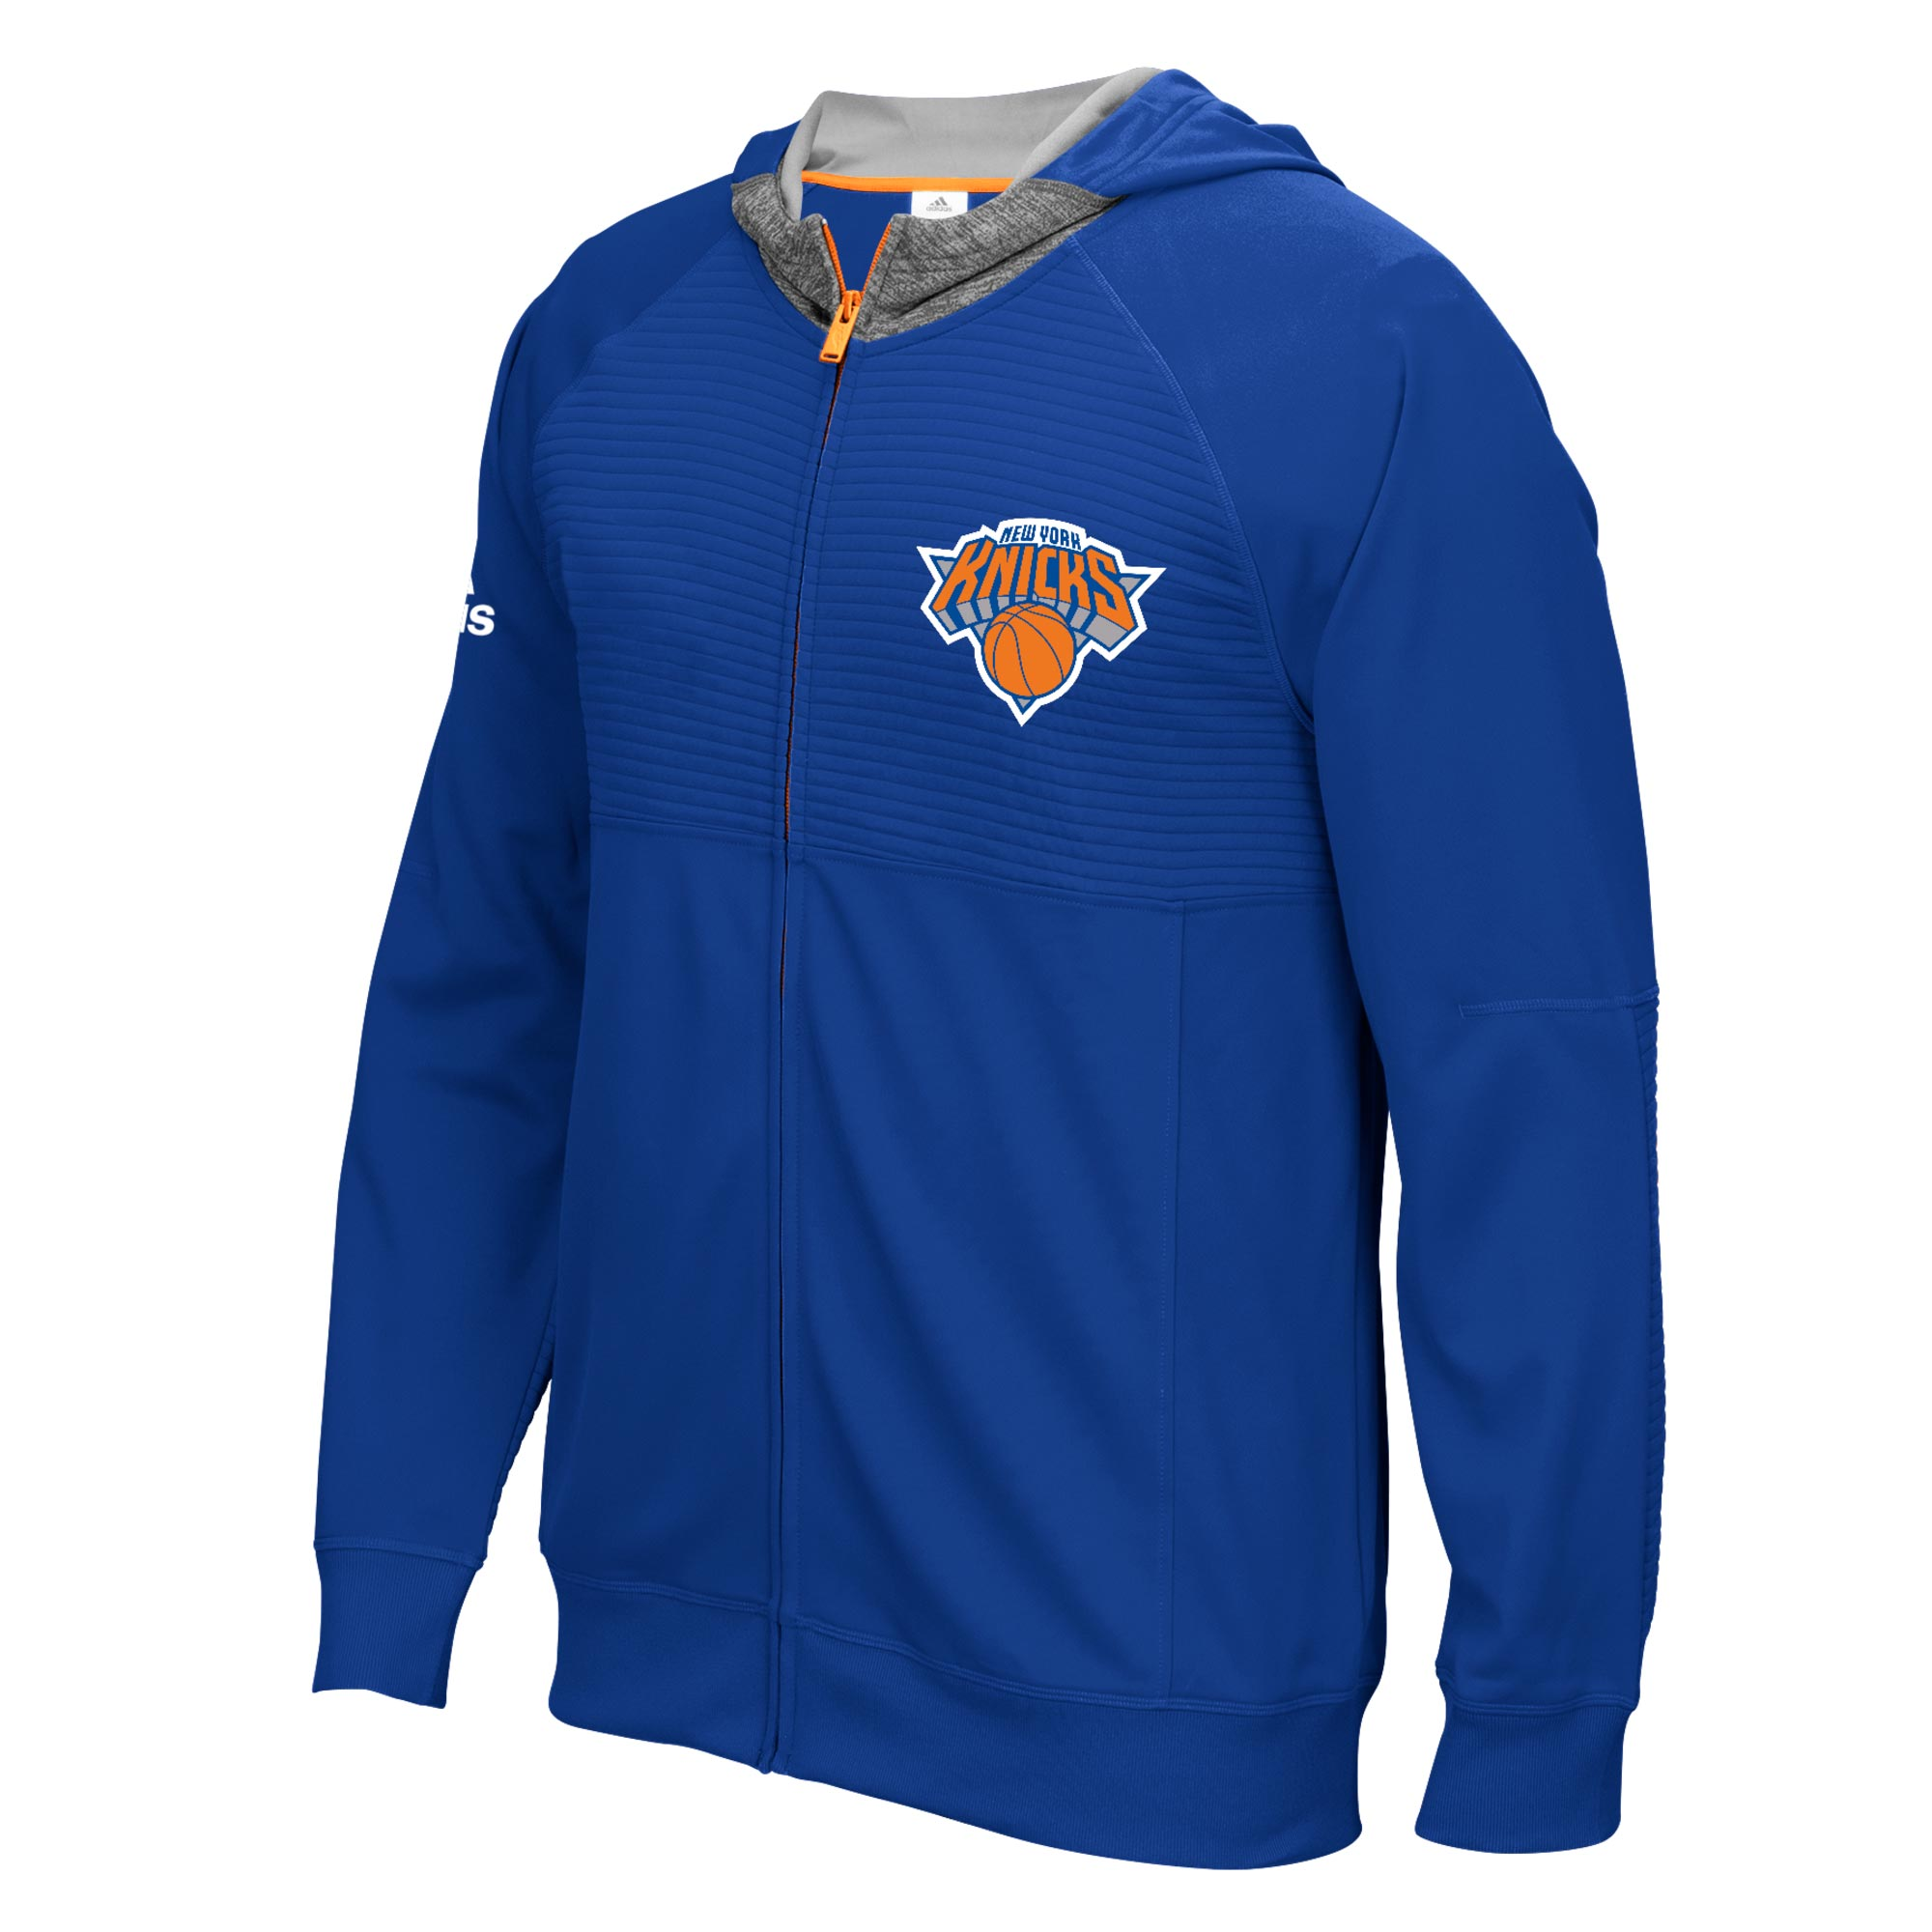 New York Knicks Pre-Game Hooded Jacket 2016-17 - Youth